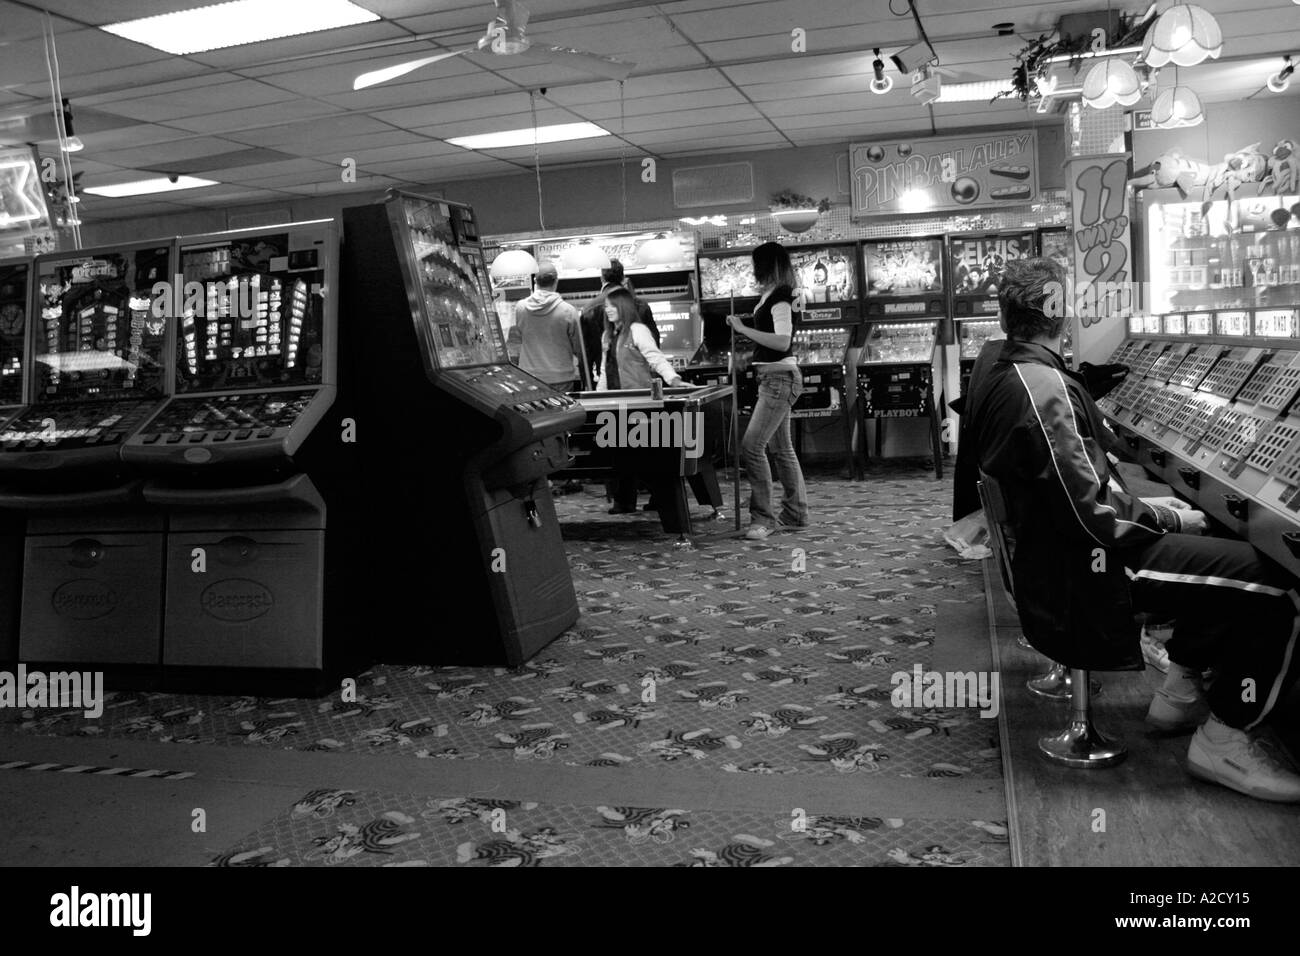 black and white image off an arcade with people playing the machines - Stock Image